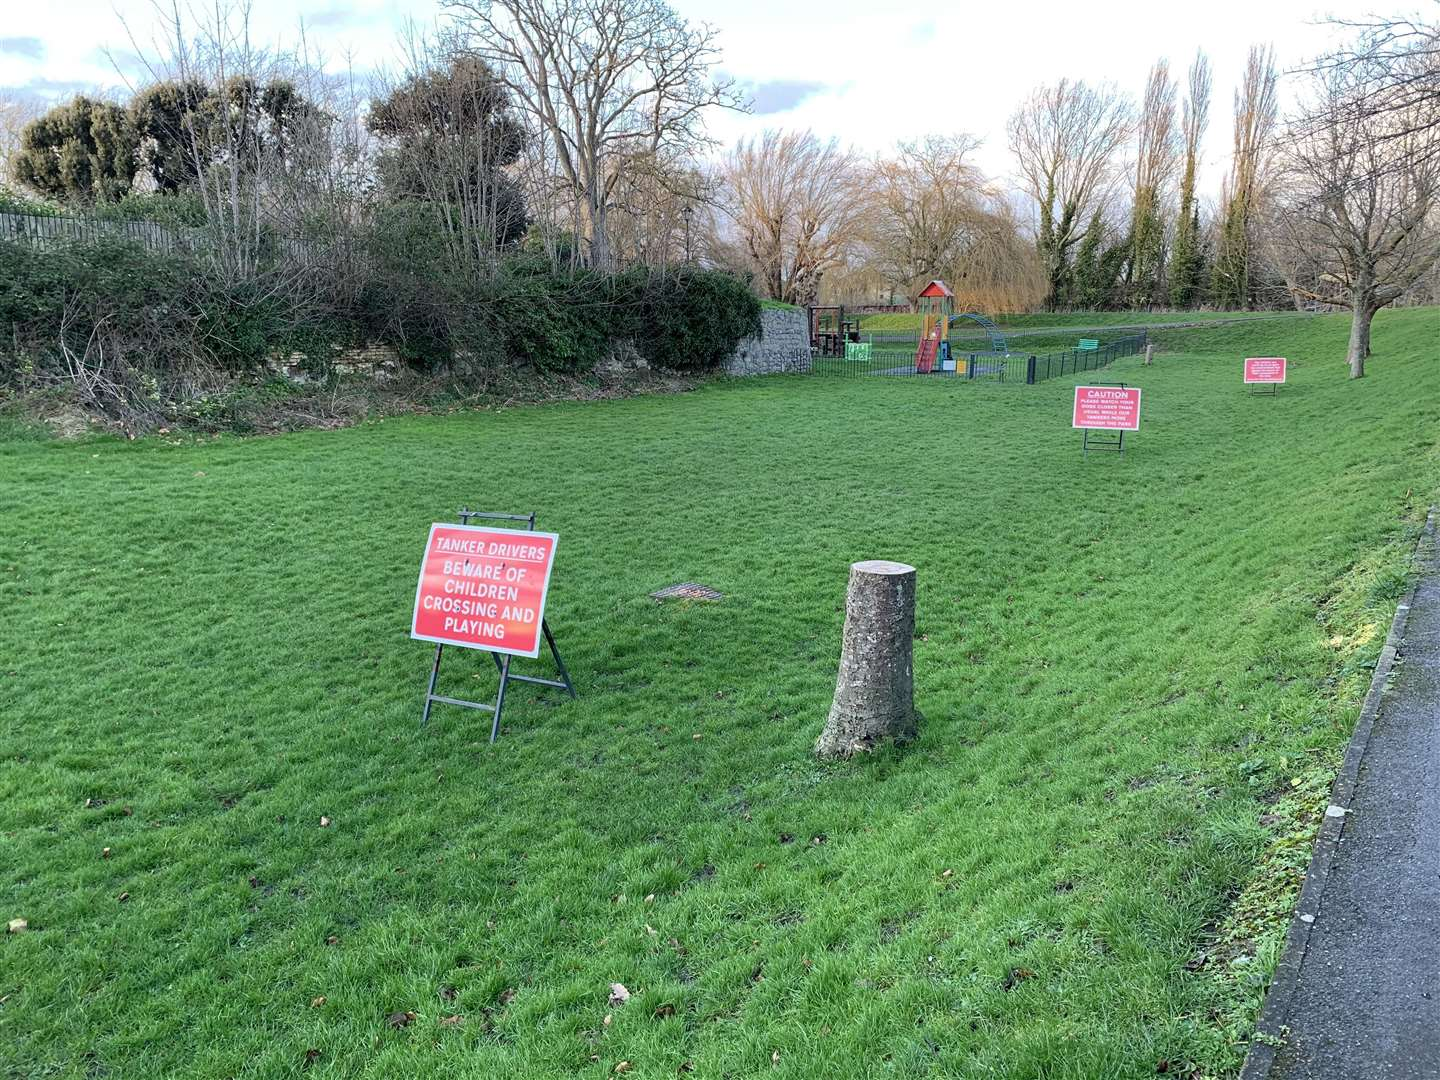 The grass area between the pumping station and play park where a medieval boat is understood to be buried